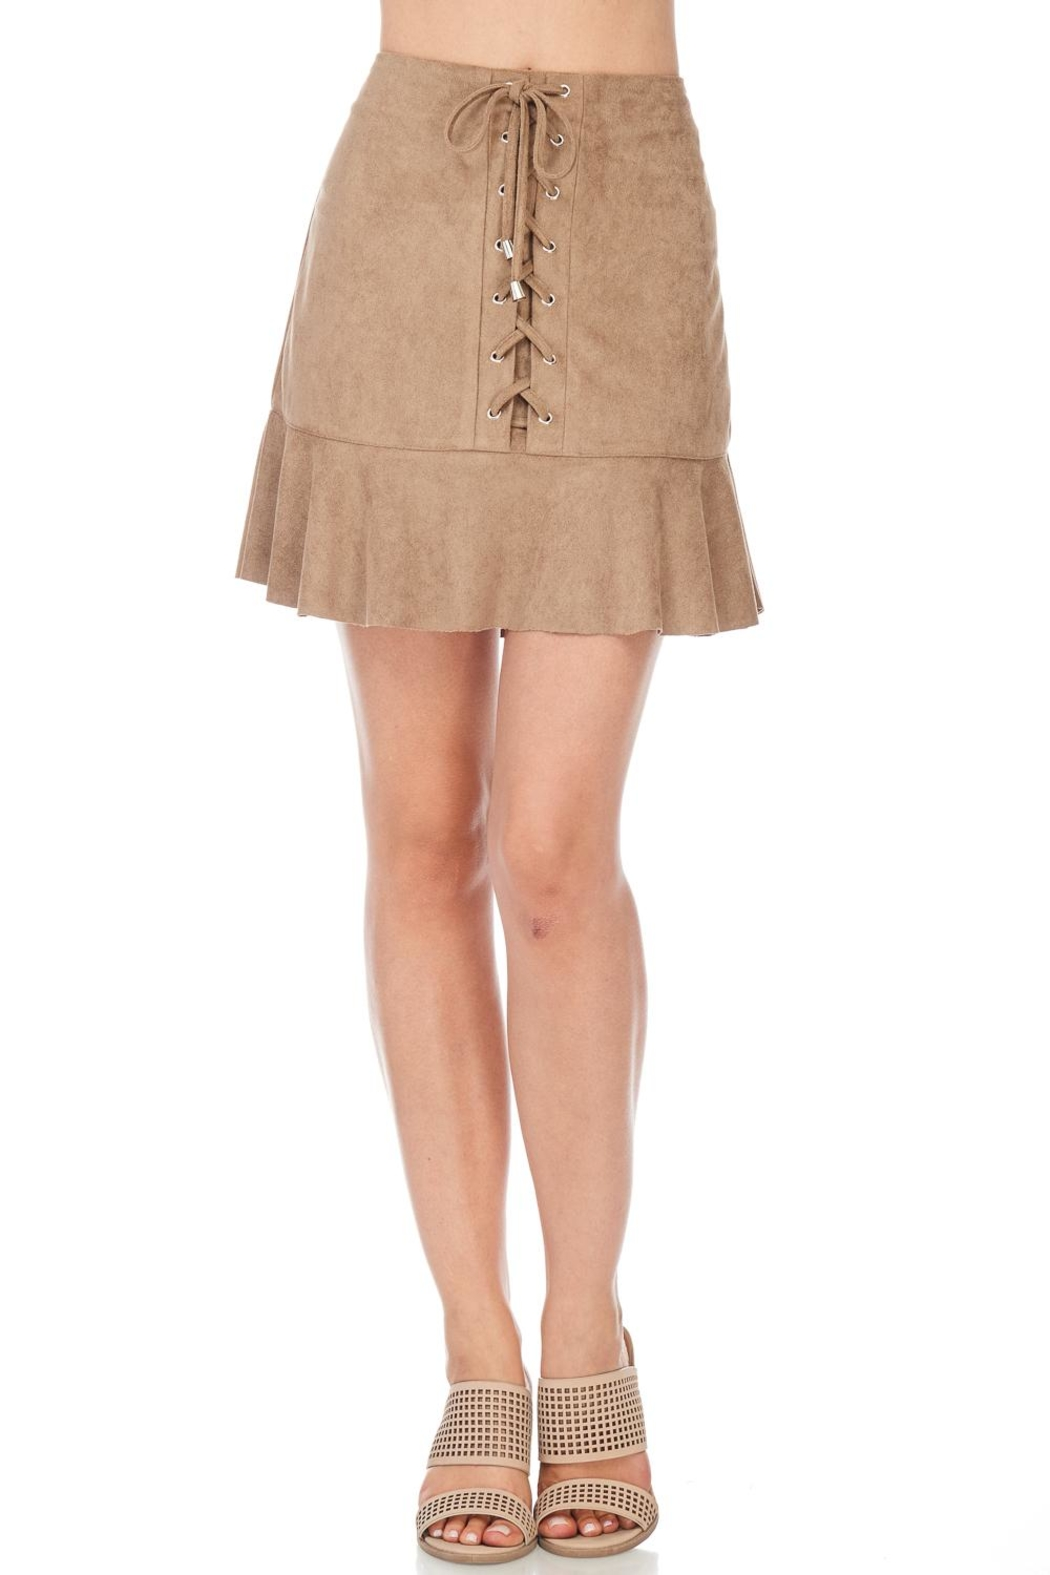 She + Sky Suede Lace Up Skirt - Main Image